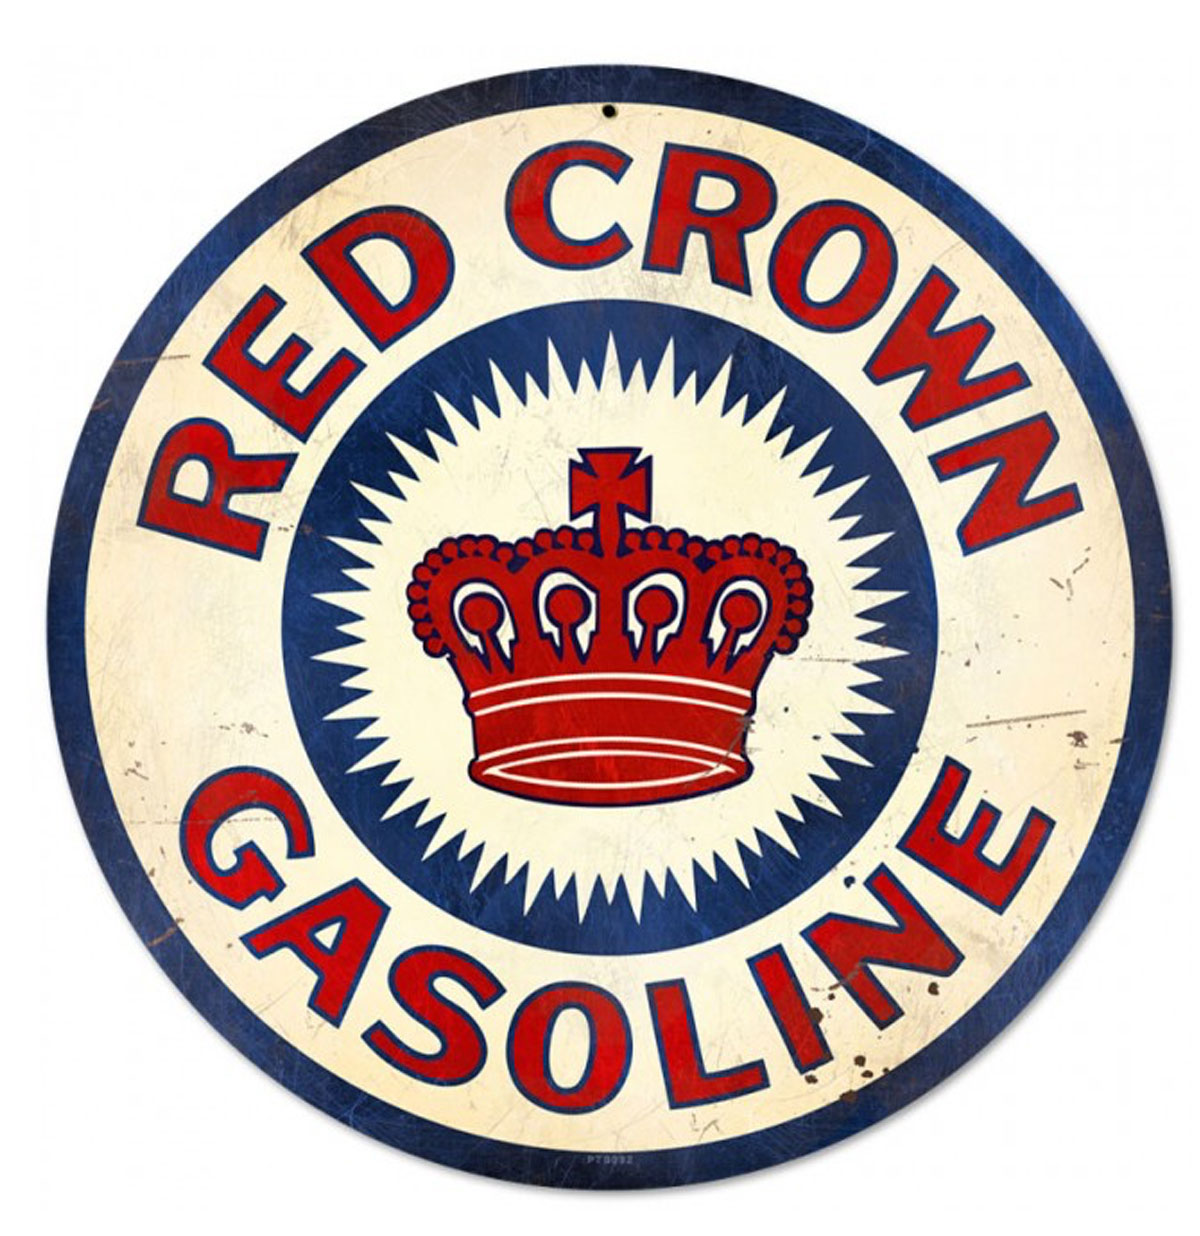 Red Crown Gasoline Zwaar Metalen Bord